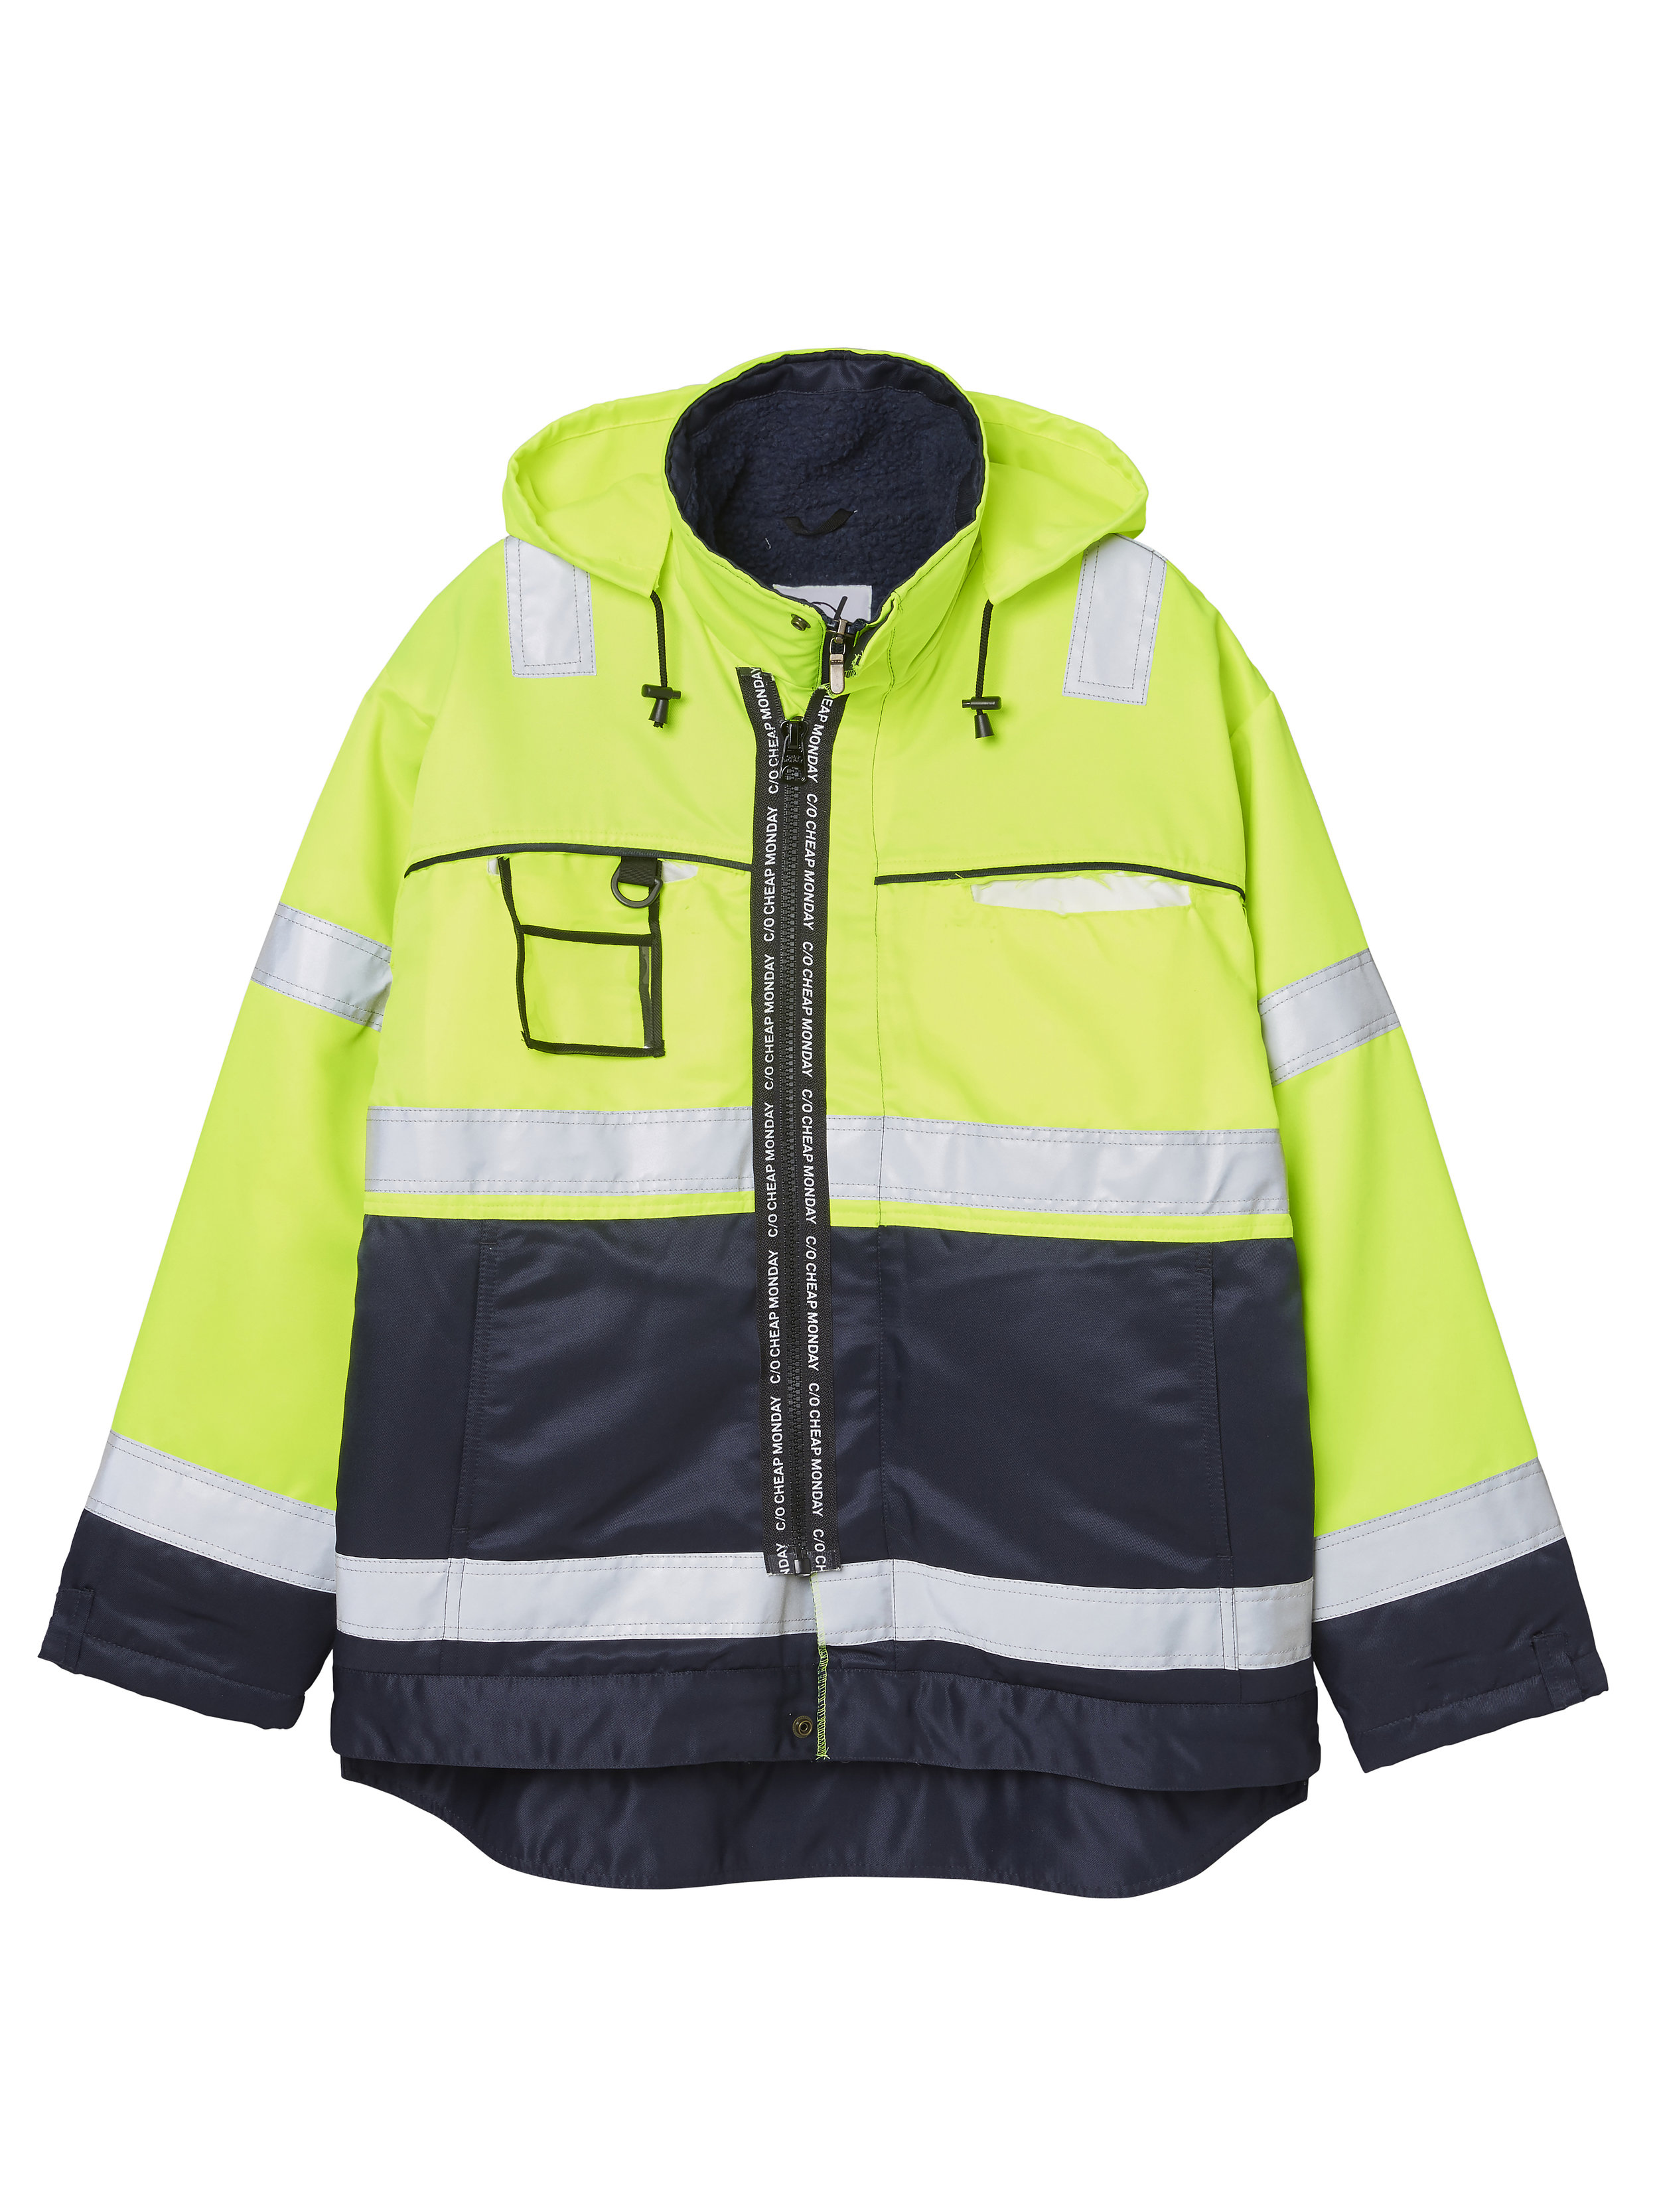 0643914_PROTECTION_JACKET_Neon_green4.jpg